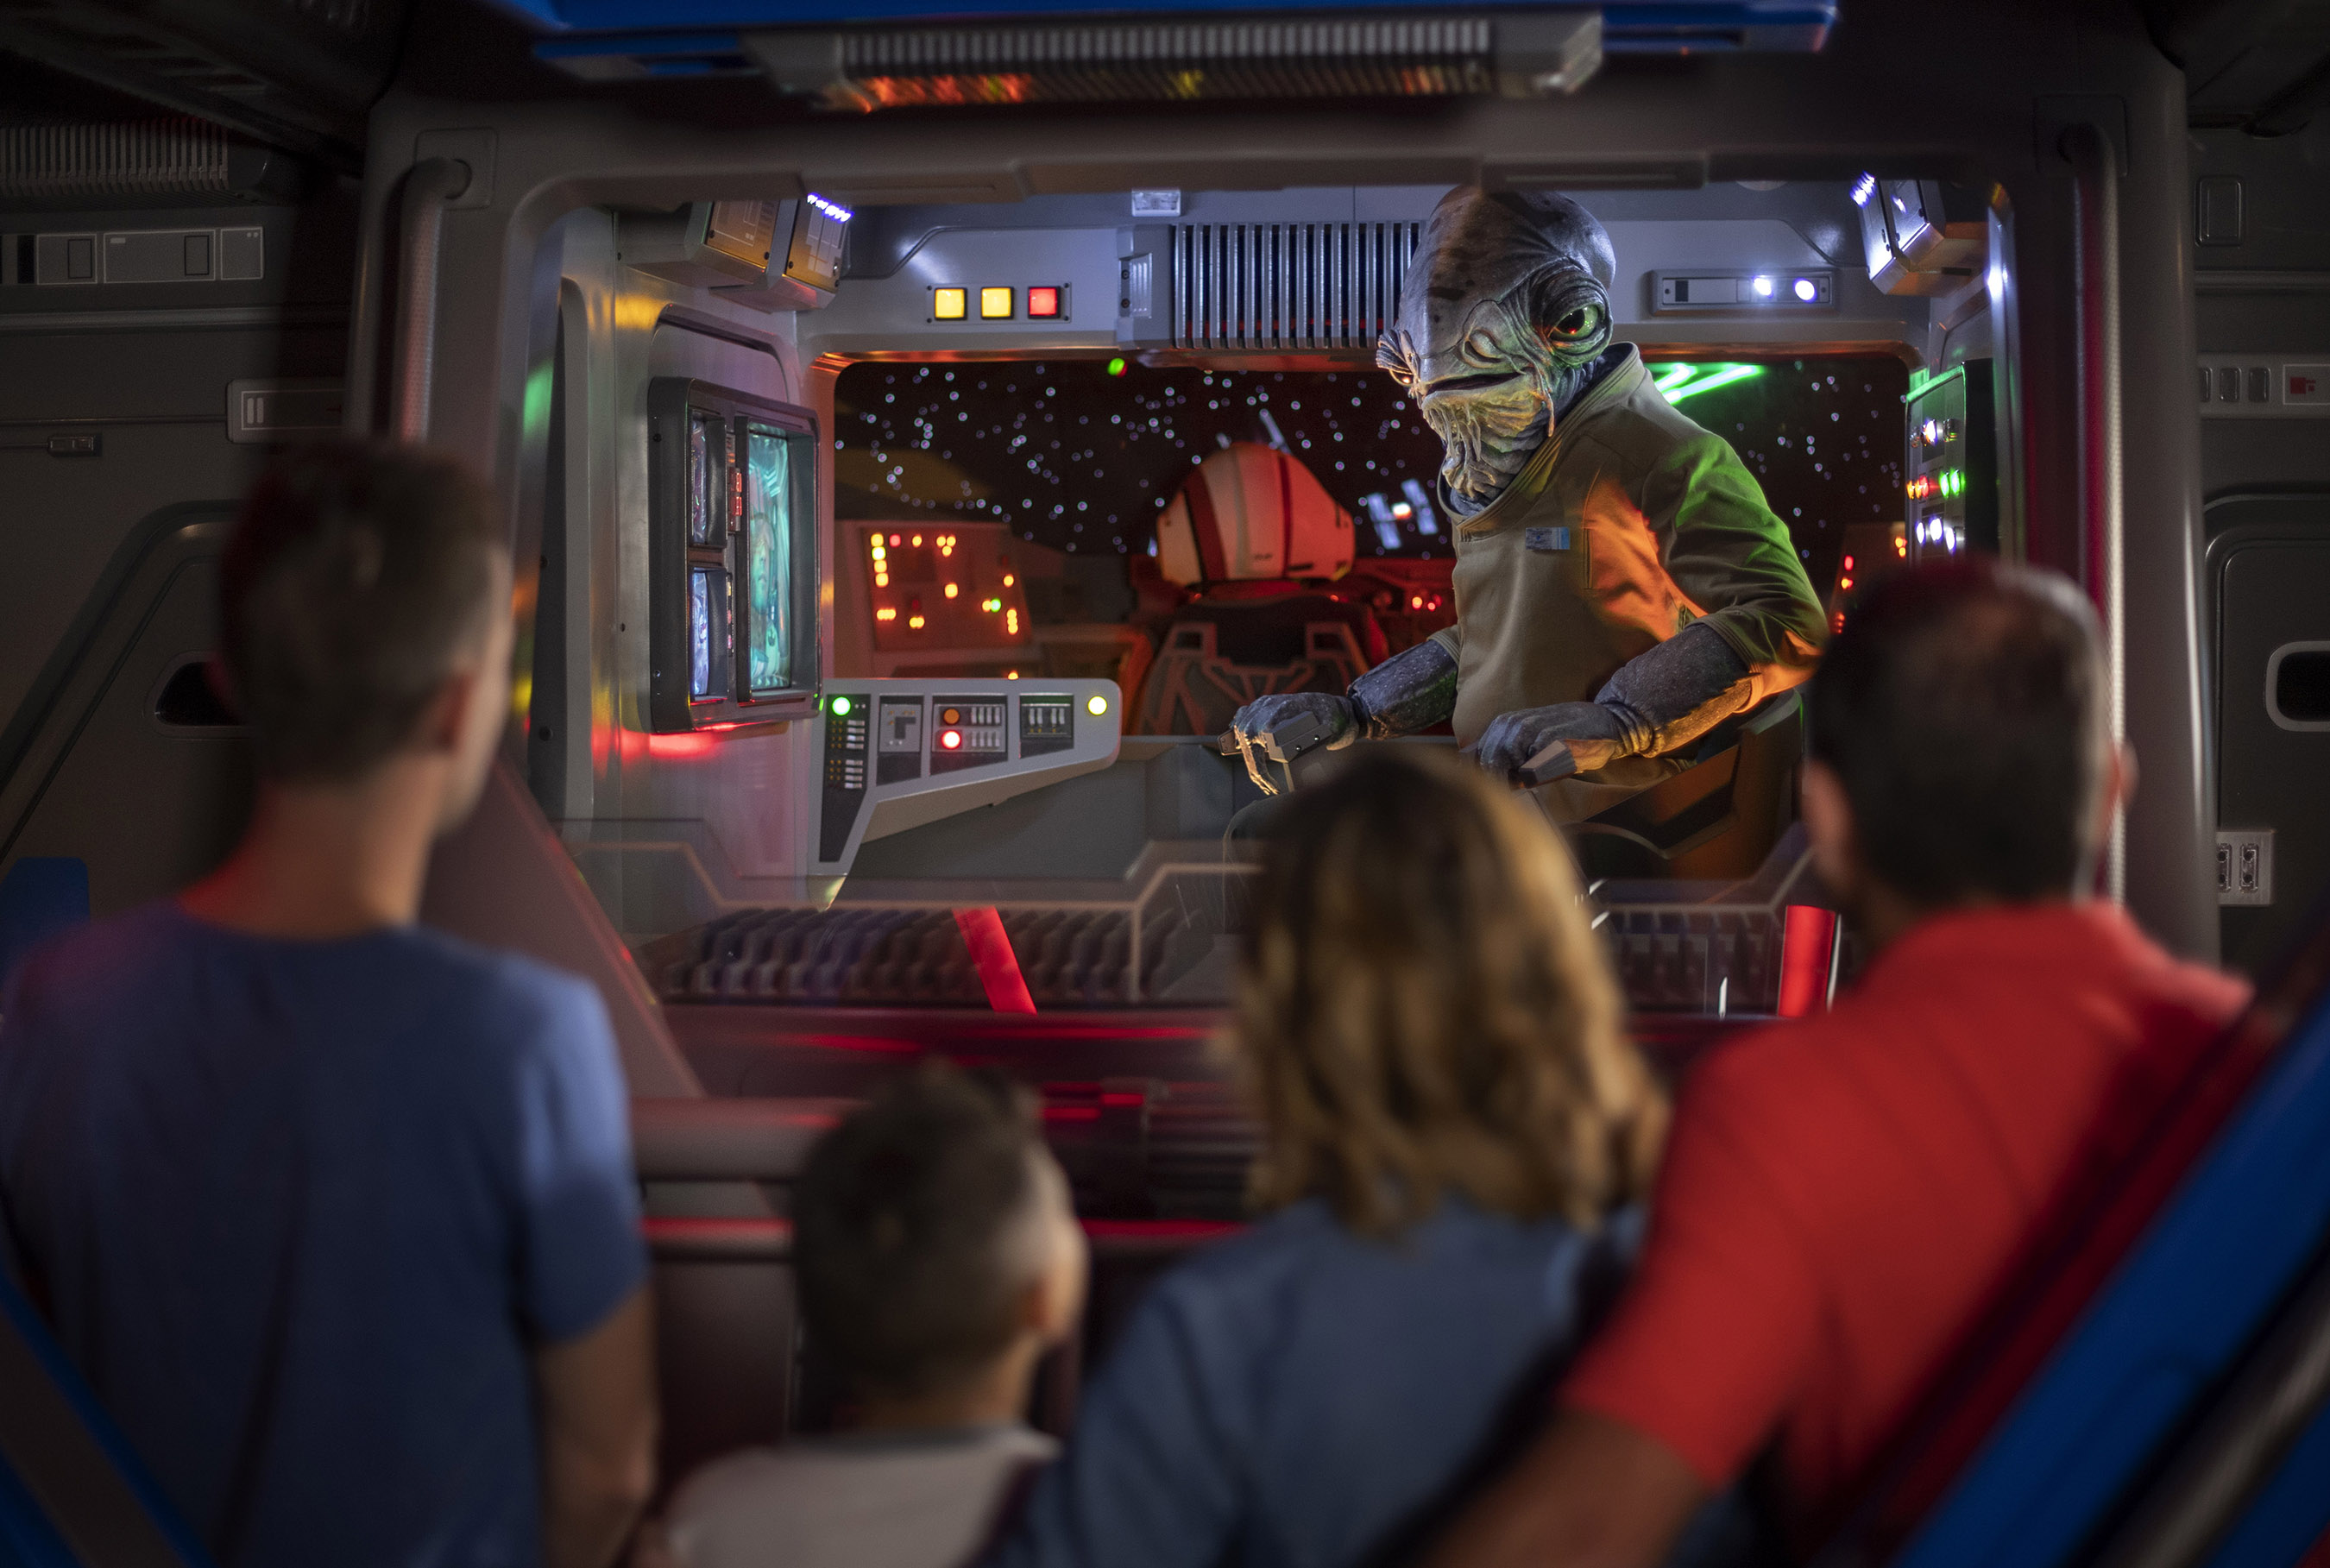 Inside the I-TS transport at Star Wars: Rise of the Resistance